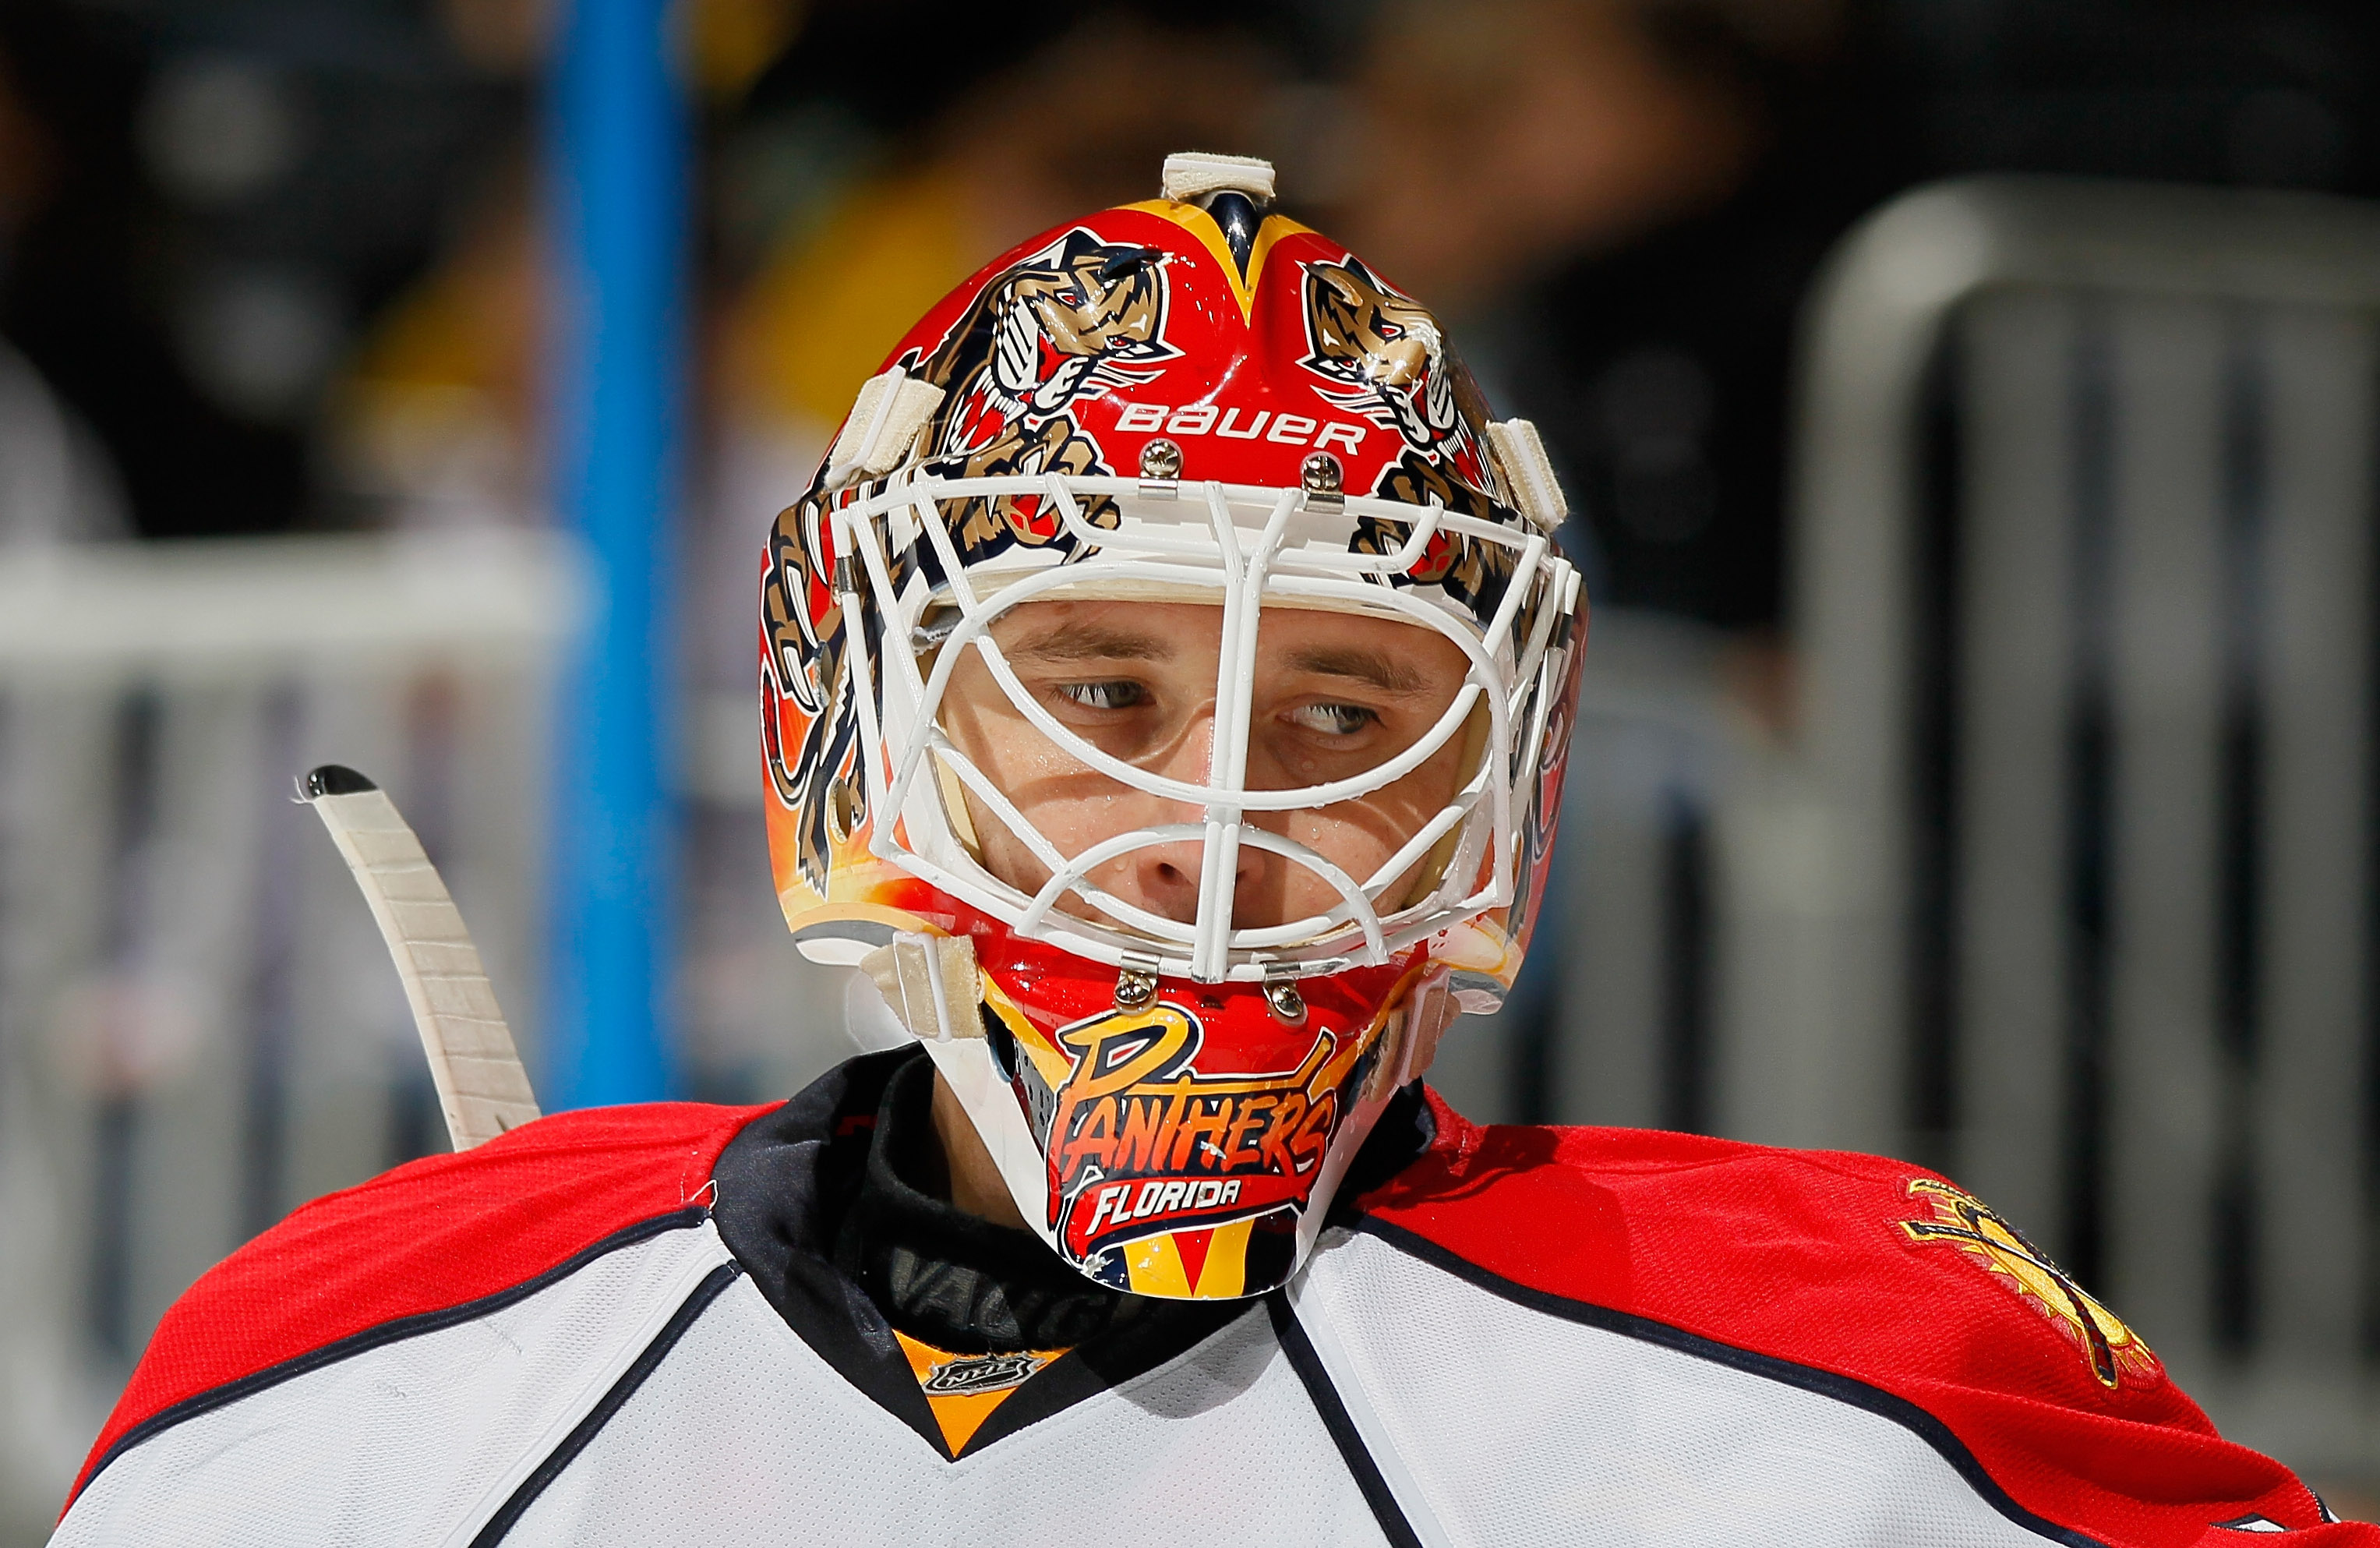 ATLANTA, GA - FEBRUARY 25:  Goaltender Tomas Vokoun #29 of the Florida Panthers looks on against the Atlanta Thrashers at Philips Arena on February 25, 2011 in Atlanta, Georgia.  (Photo by Kevin C. Cox/Getty Images)